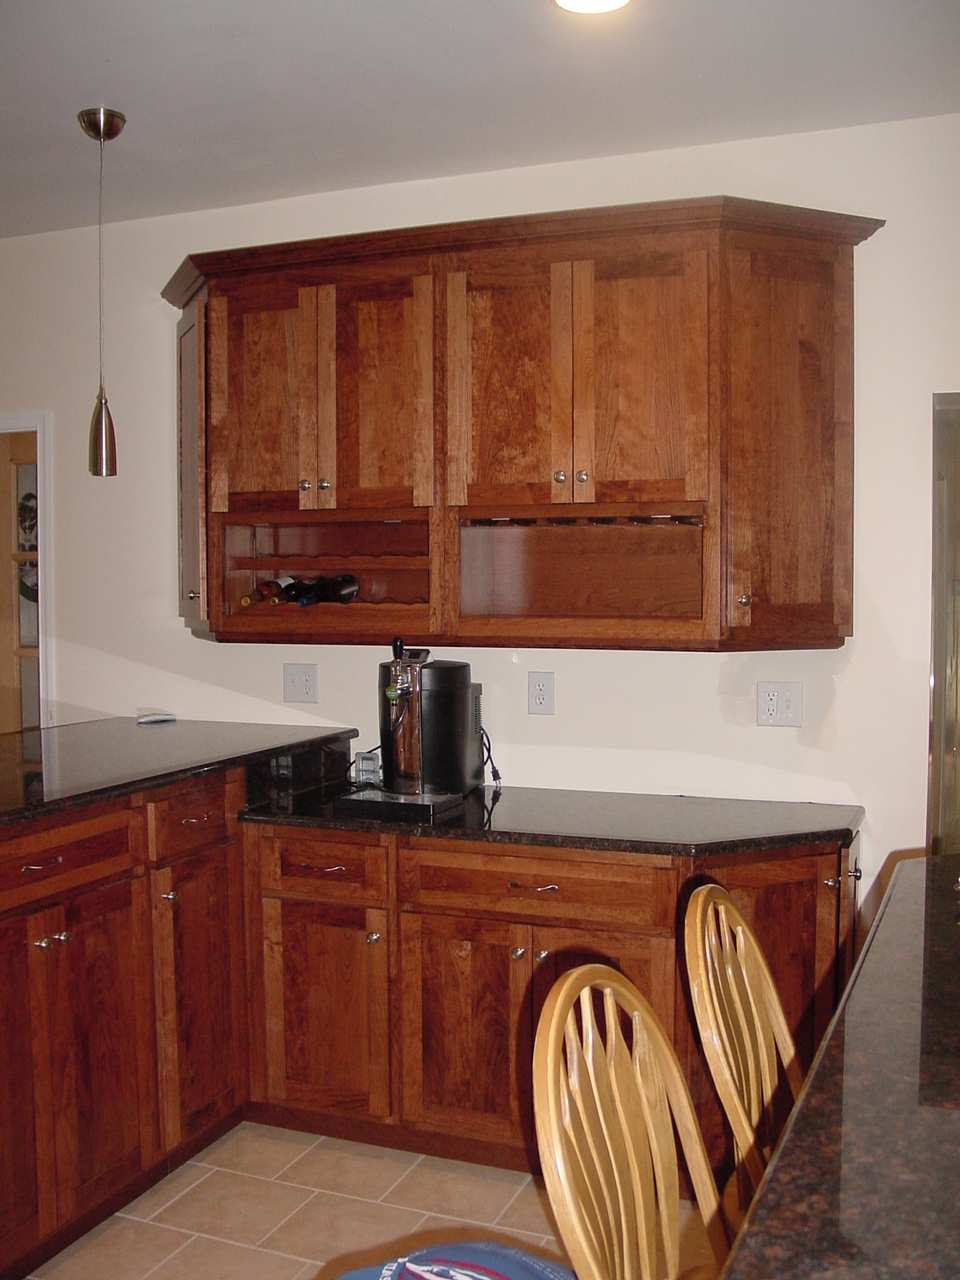 This Doylestown, New Britain, area shows a wall cabinet with wine bottles and glass stems area to give this kitchen a great custom area with all the added convenience to make cooking in your kitchen a pleasure.